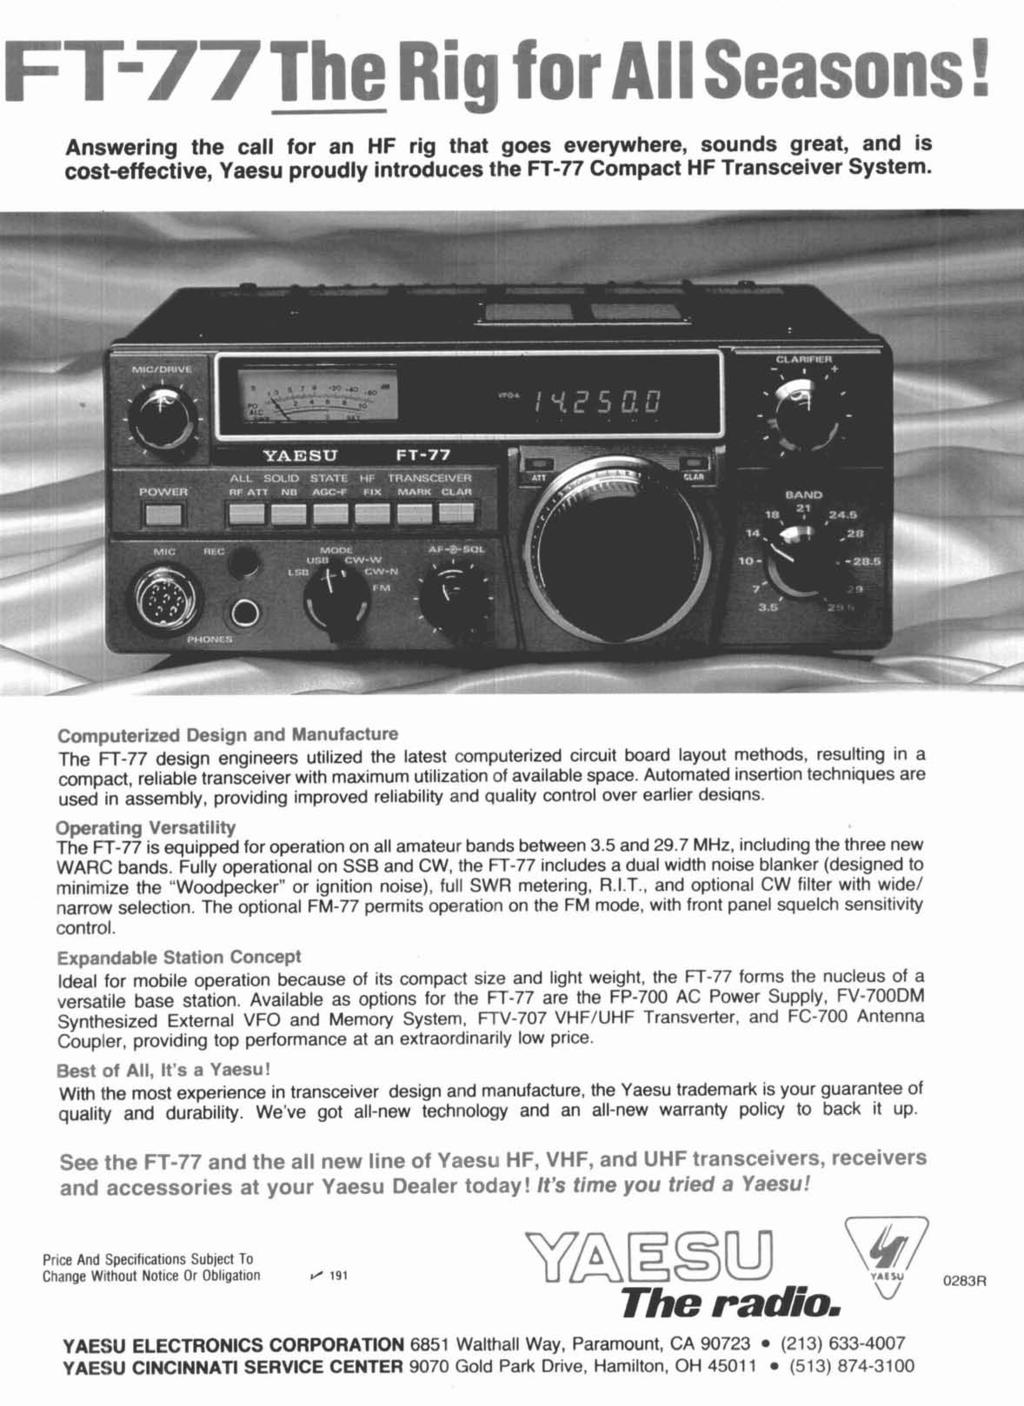 Short Verticals Vertical Phased Arrays Smart Squelch Harmonic Light Laser Led Gt Circuits Running Message Board Cd4017 Answering The Call For An Hf Rig That Goes Everywhere Sounds Great And Is